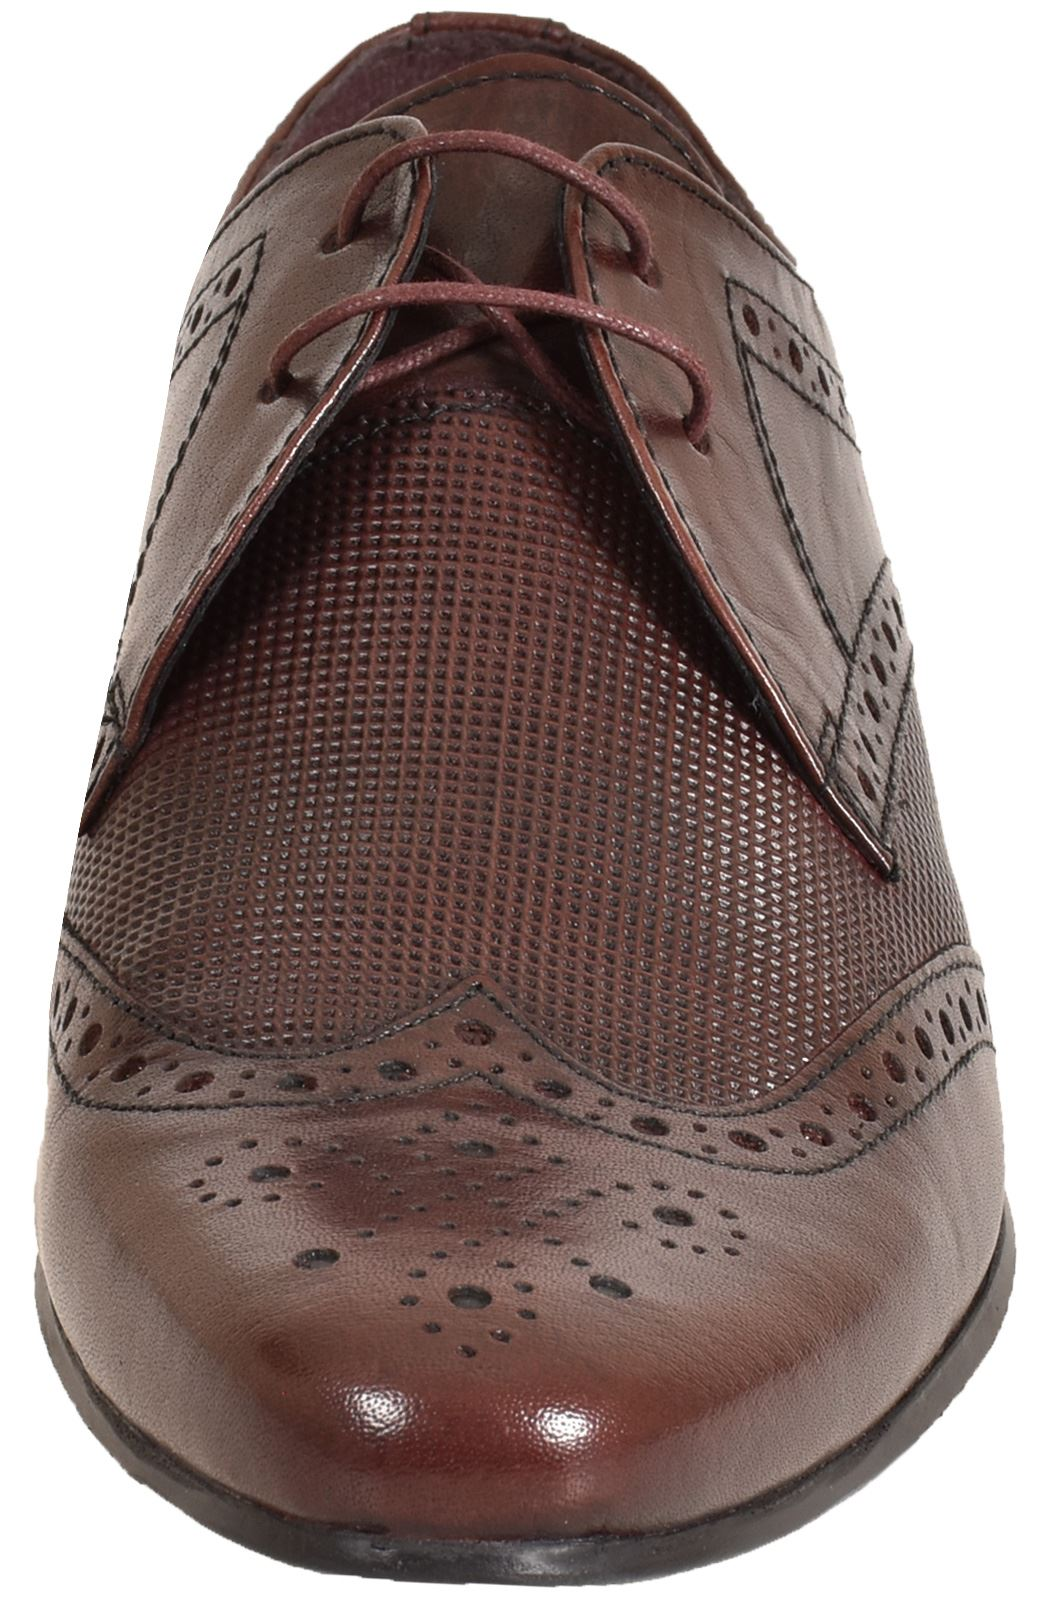 Mens-UK-Style-Leather-Lining-Formal-Office-Wedding-Smart-Work-Brogue-Shoes thumbnail 125